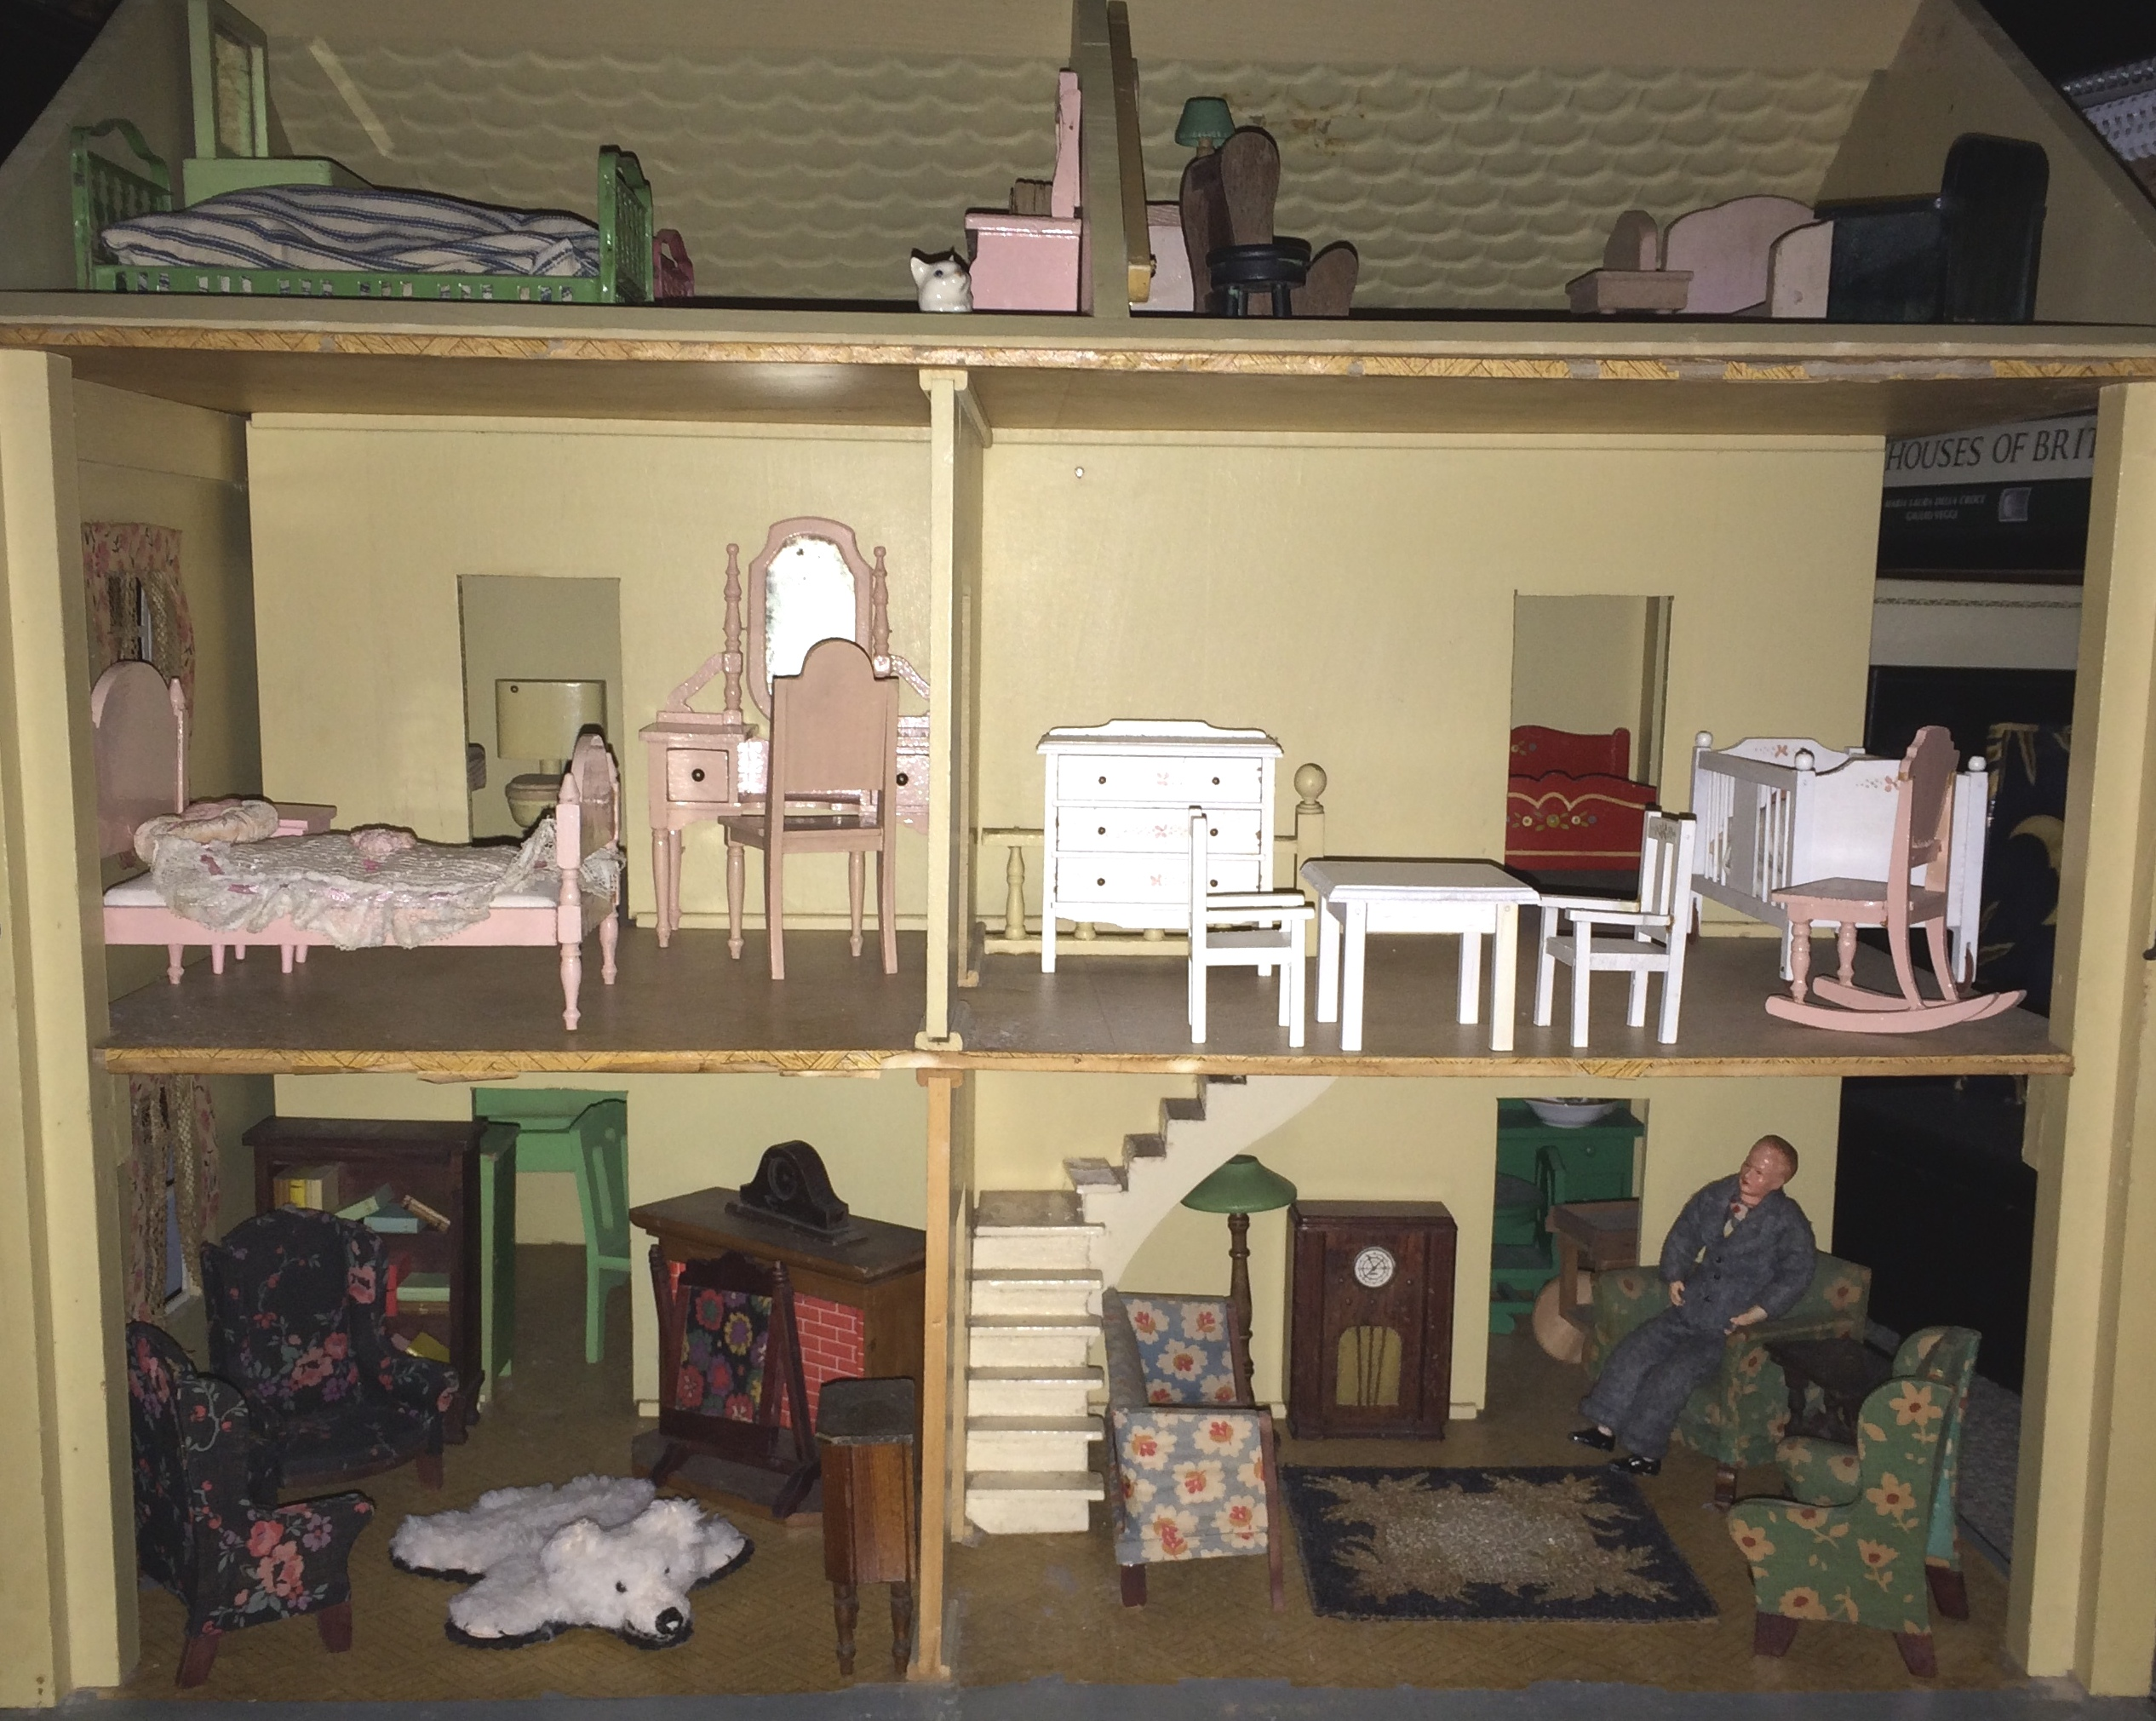 Interior of fromt of 8 room house, showing furnished living rooms (one with stairs) and bedrooms